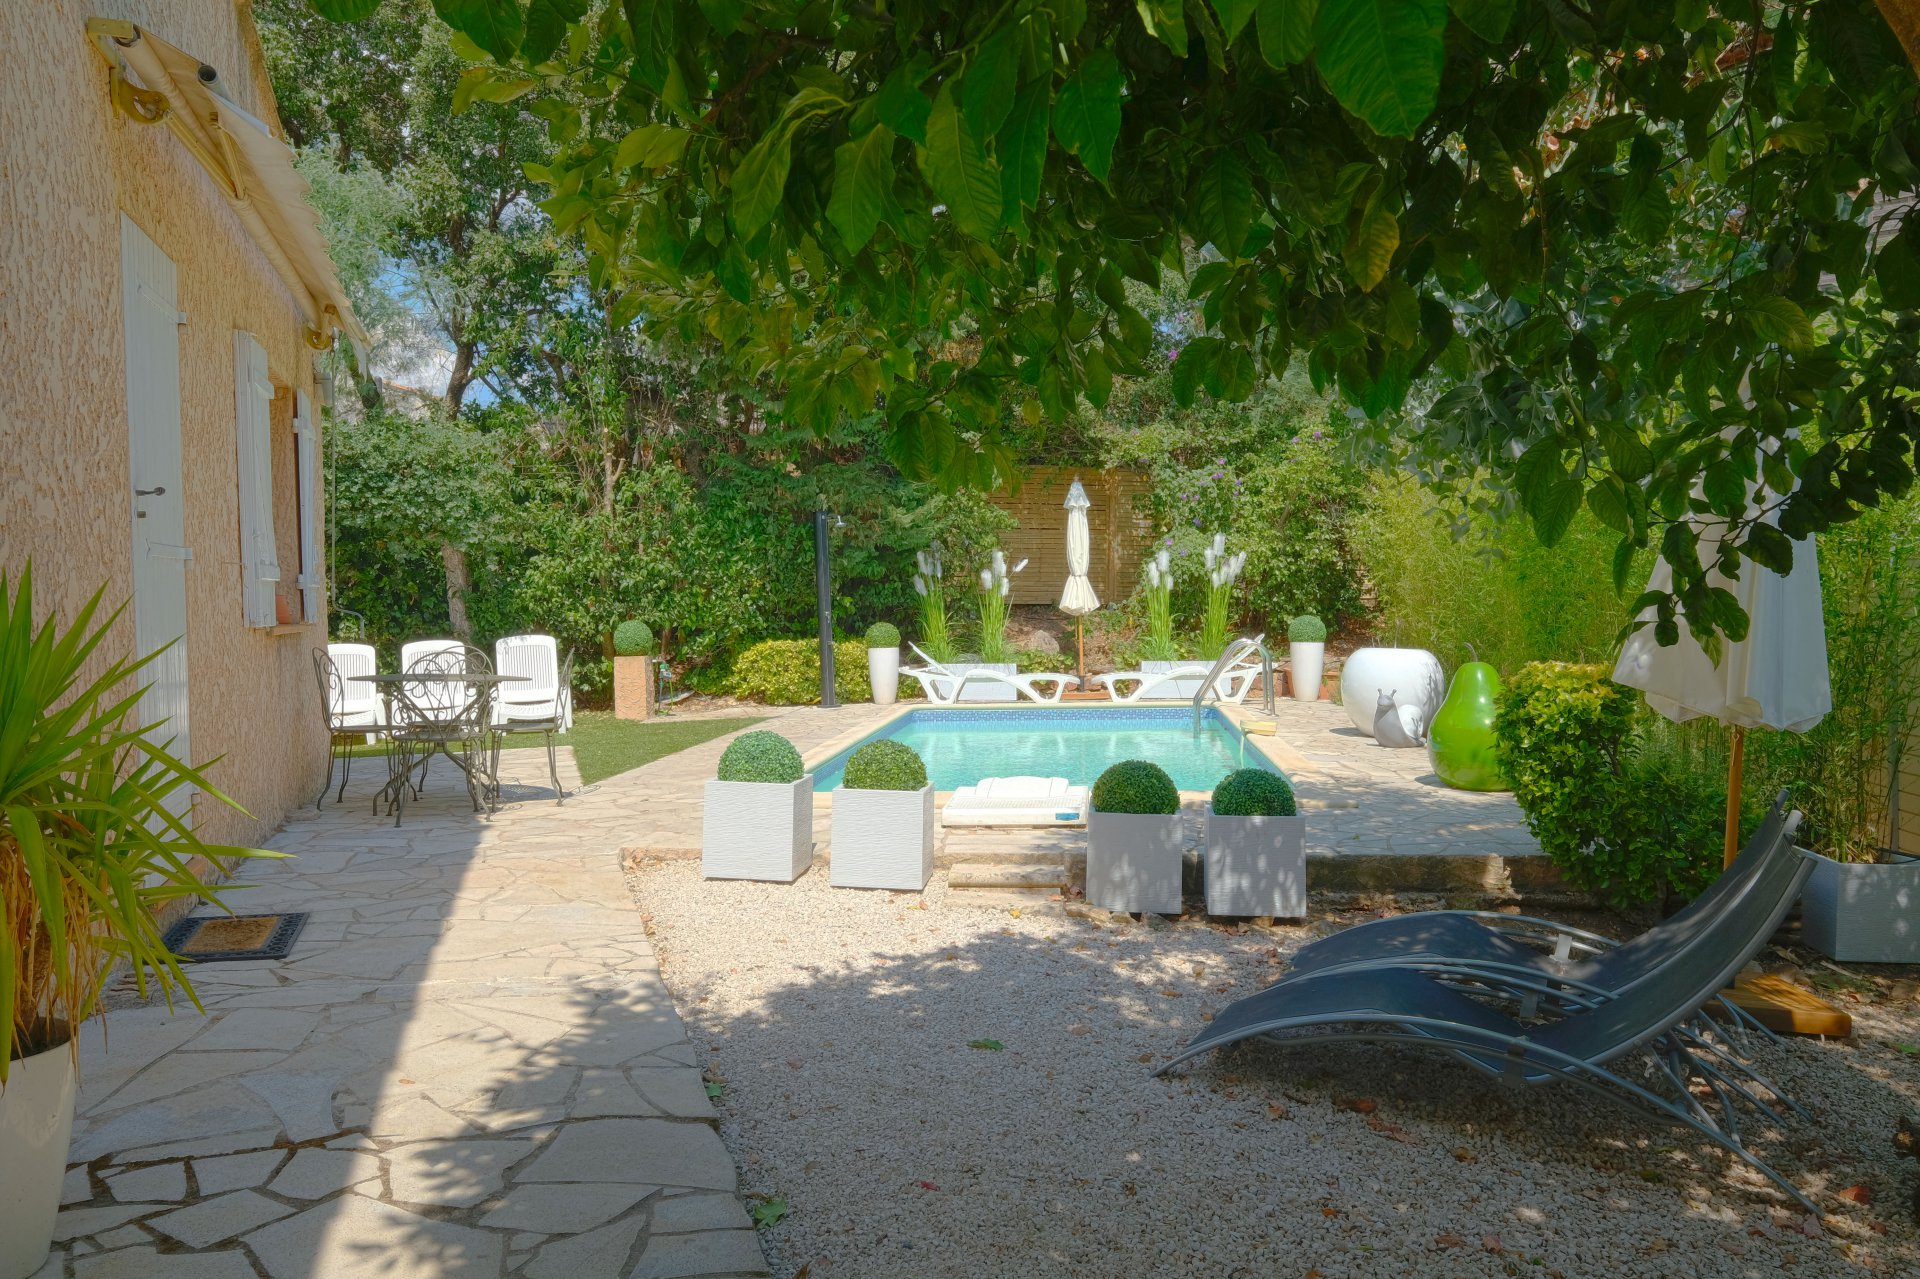 Renovated house 4 bedrooms, swimmingpool walking to beach es St Maxime